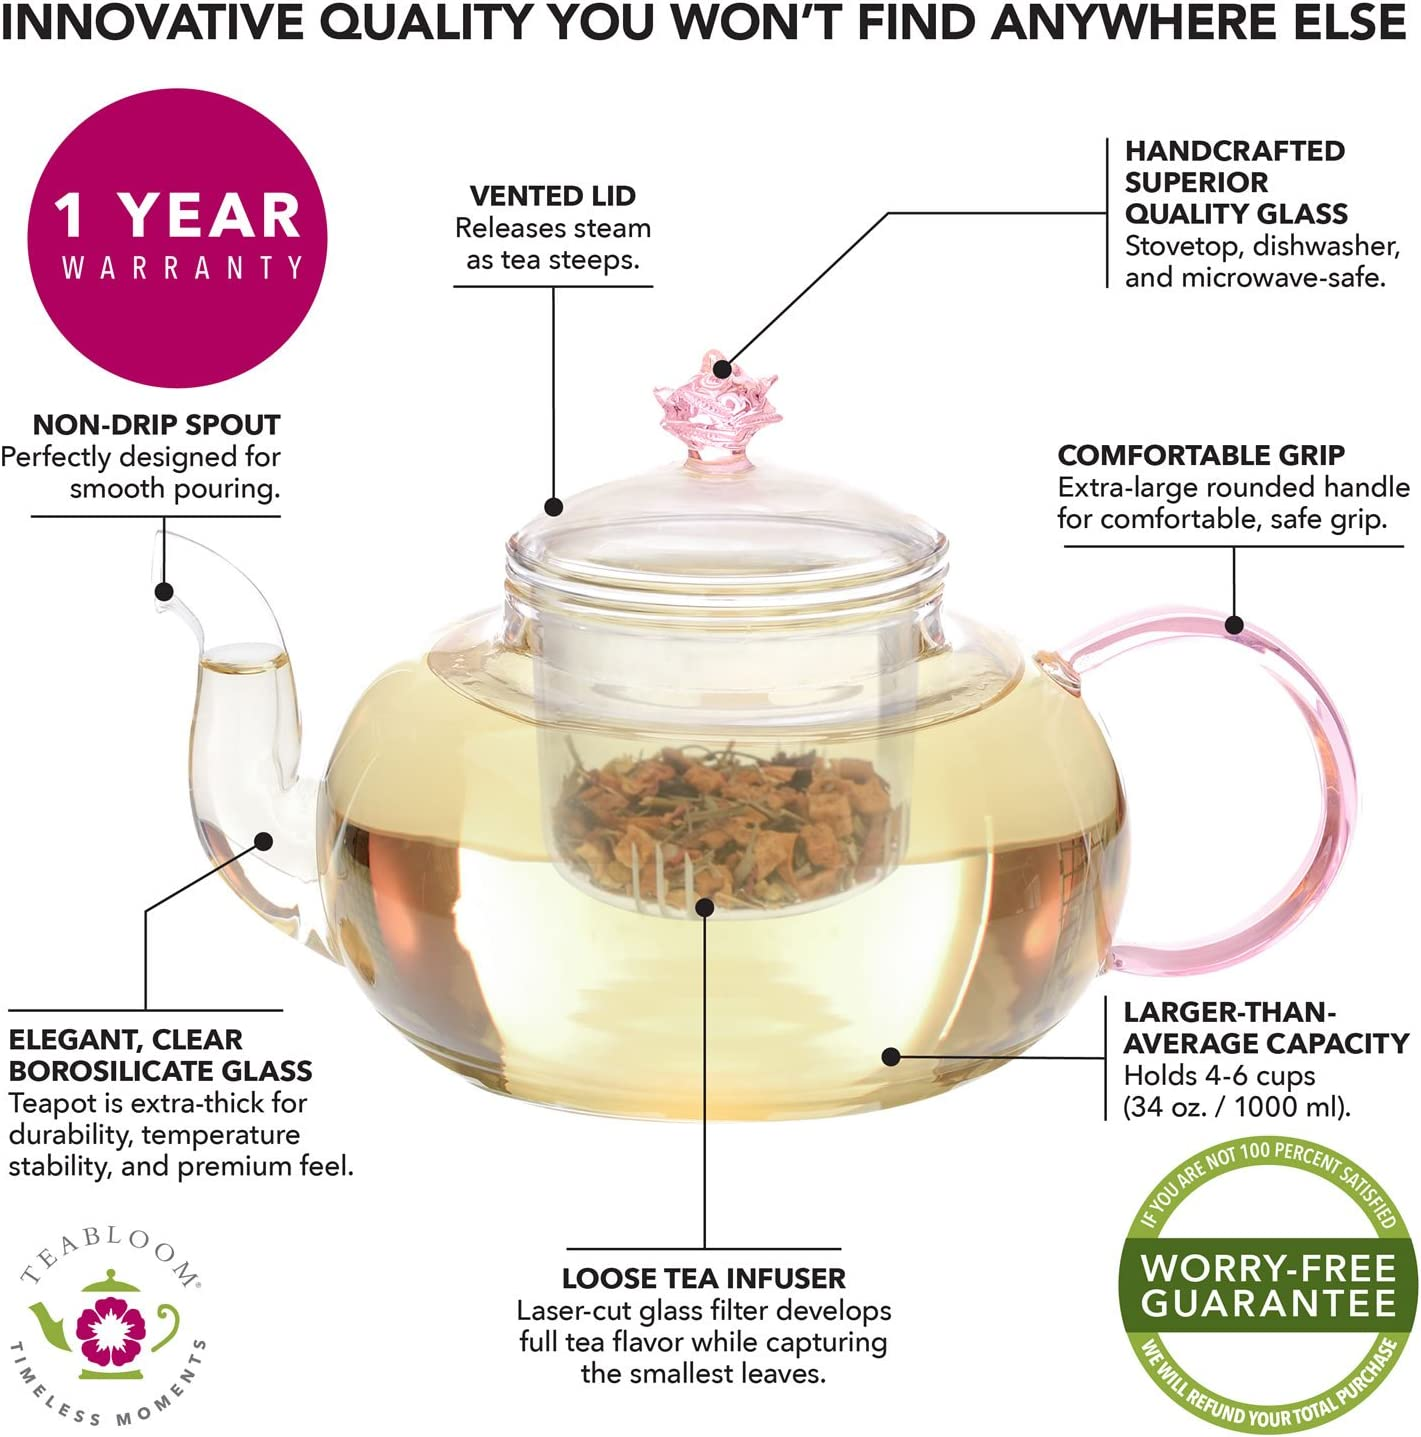 Teabloom Rose Teapot Set - 34 oz (3-4 Cups) Borosilicate Glass Teapot, Glass Tea Infuser, 2 Flowering Teas - Thermal Shock Resistant - Stovetop, Microwave, Dishwasher Safe - Pretty in Pink